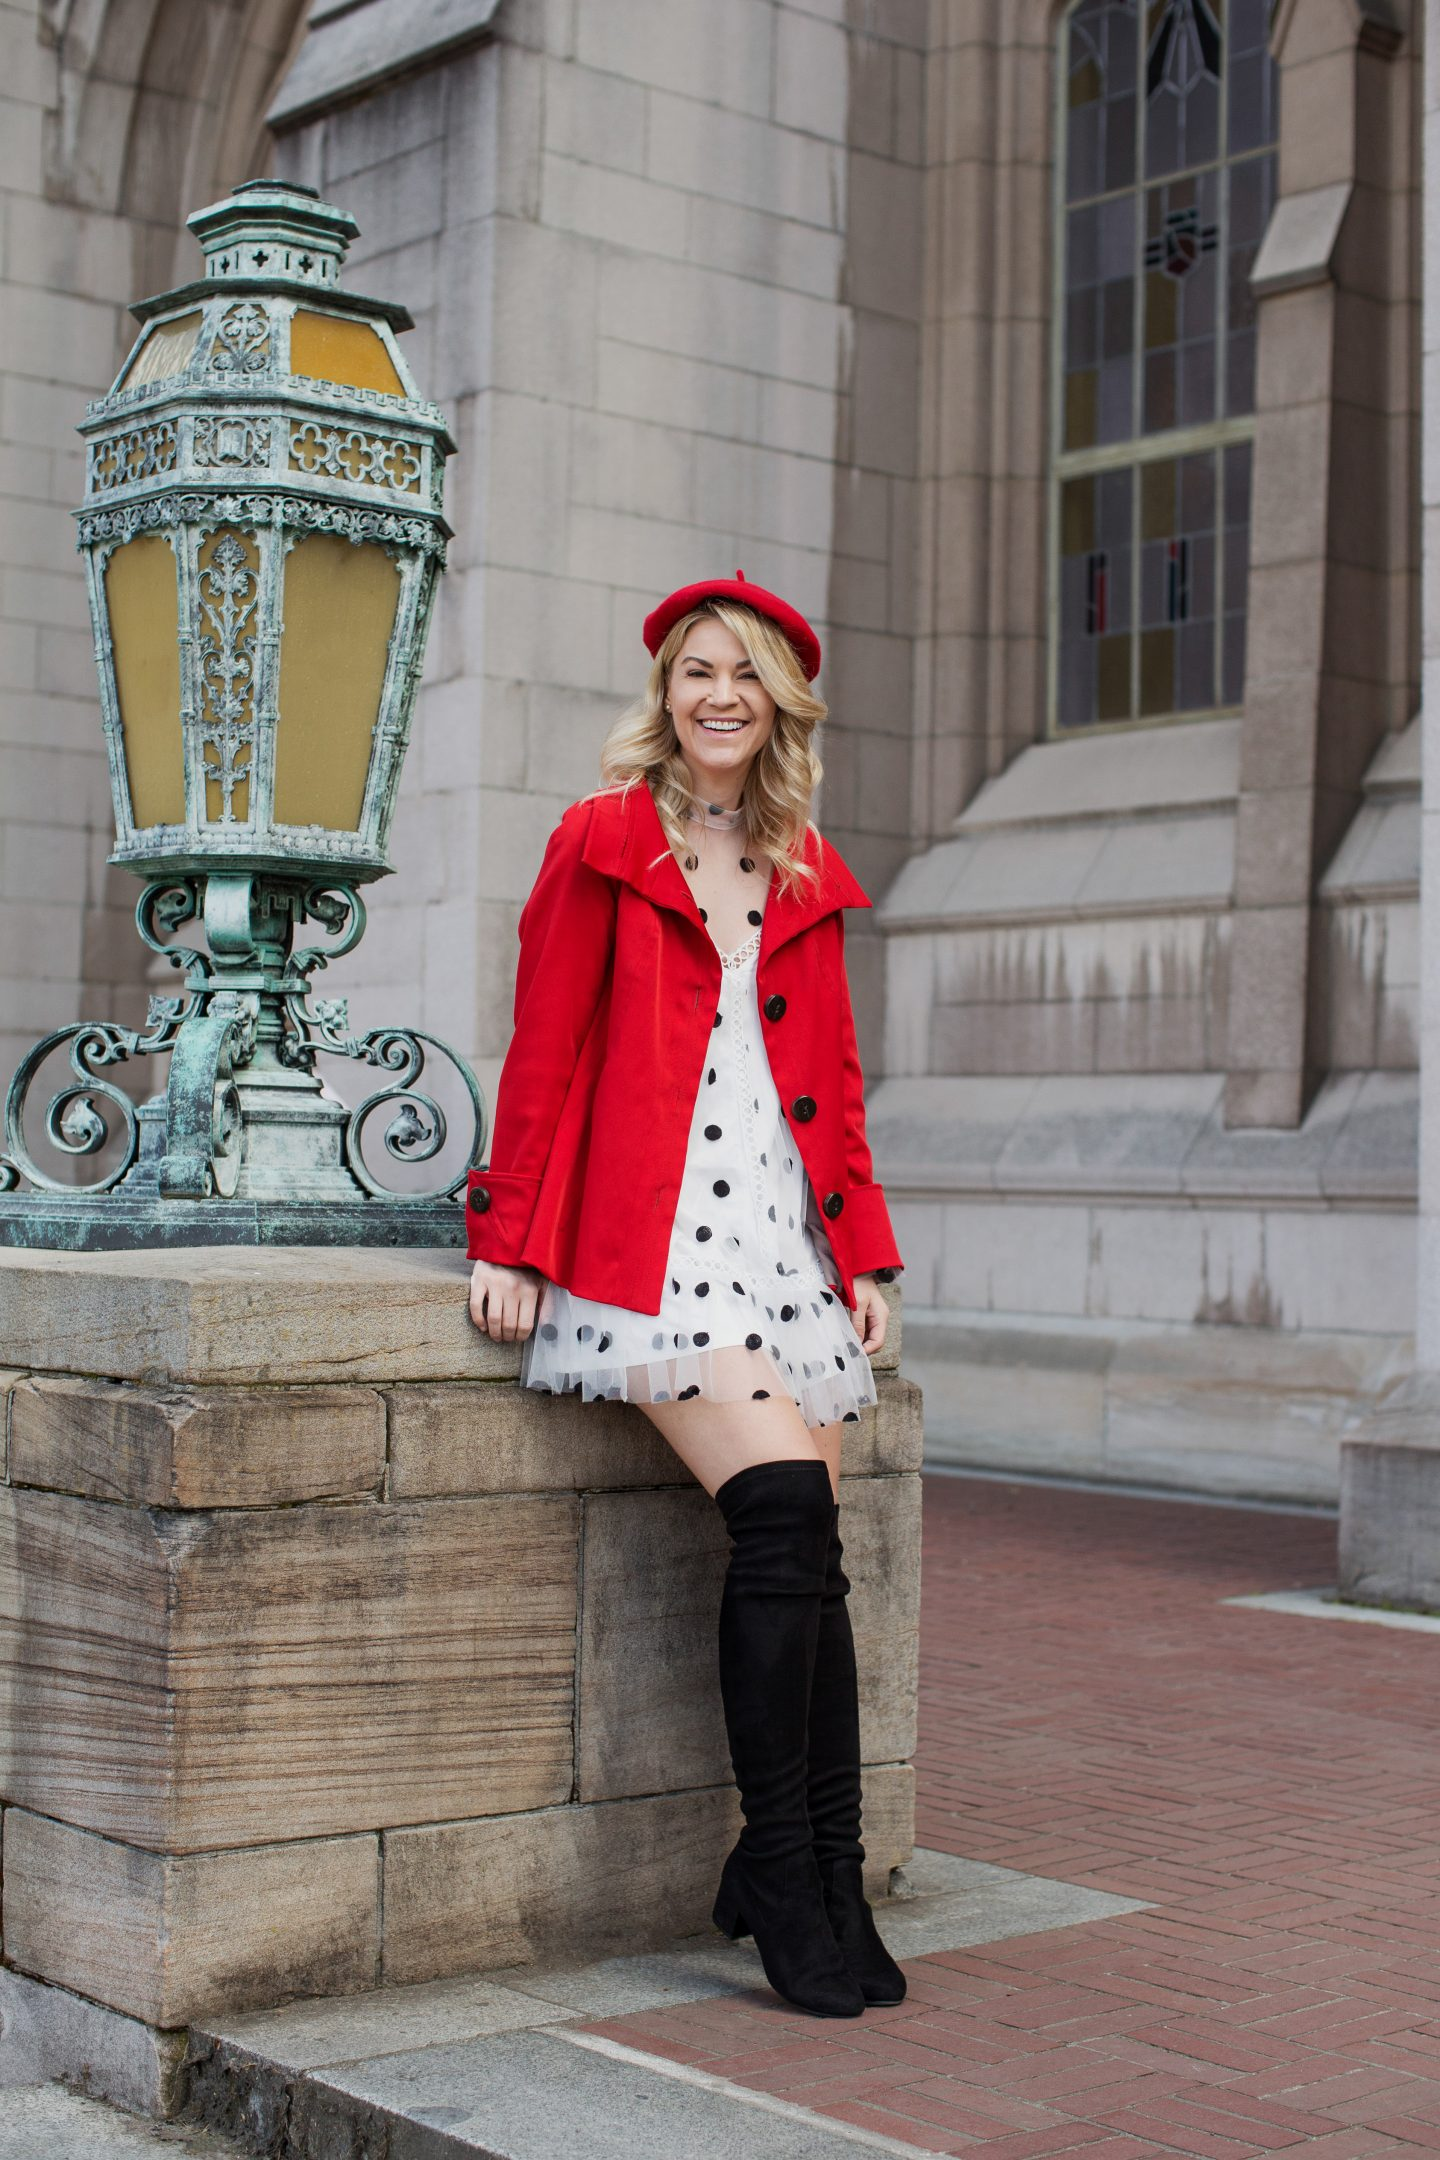 zara red polka dot dress otk boots